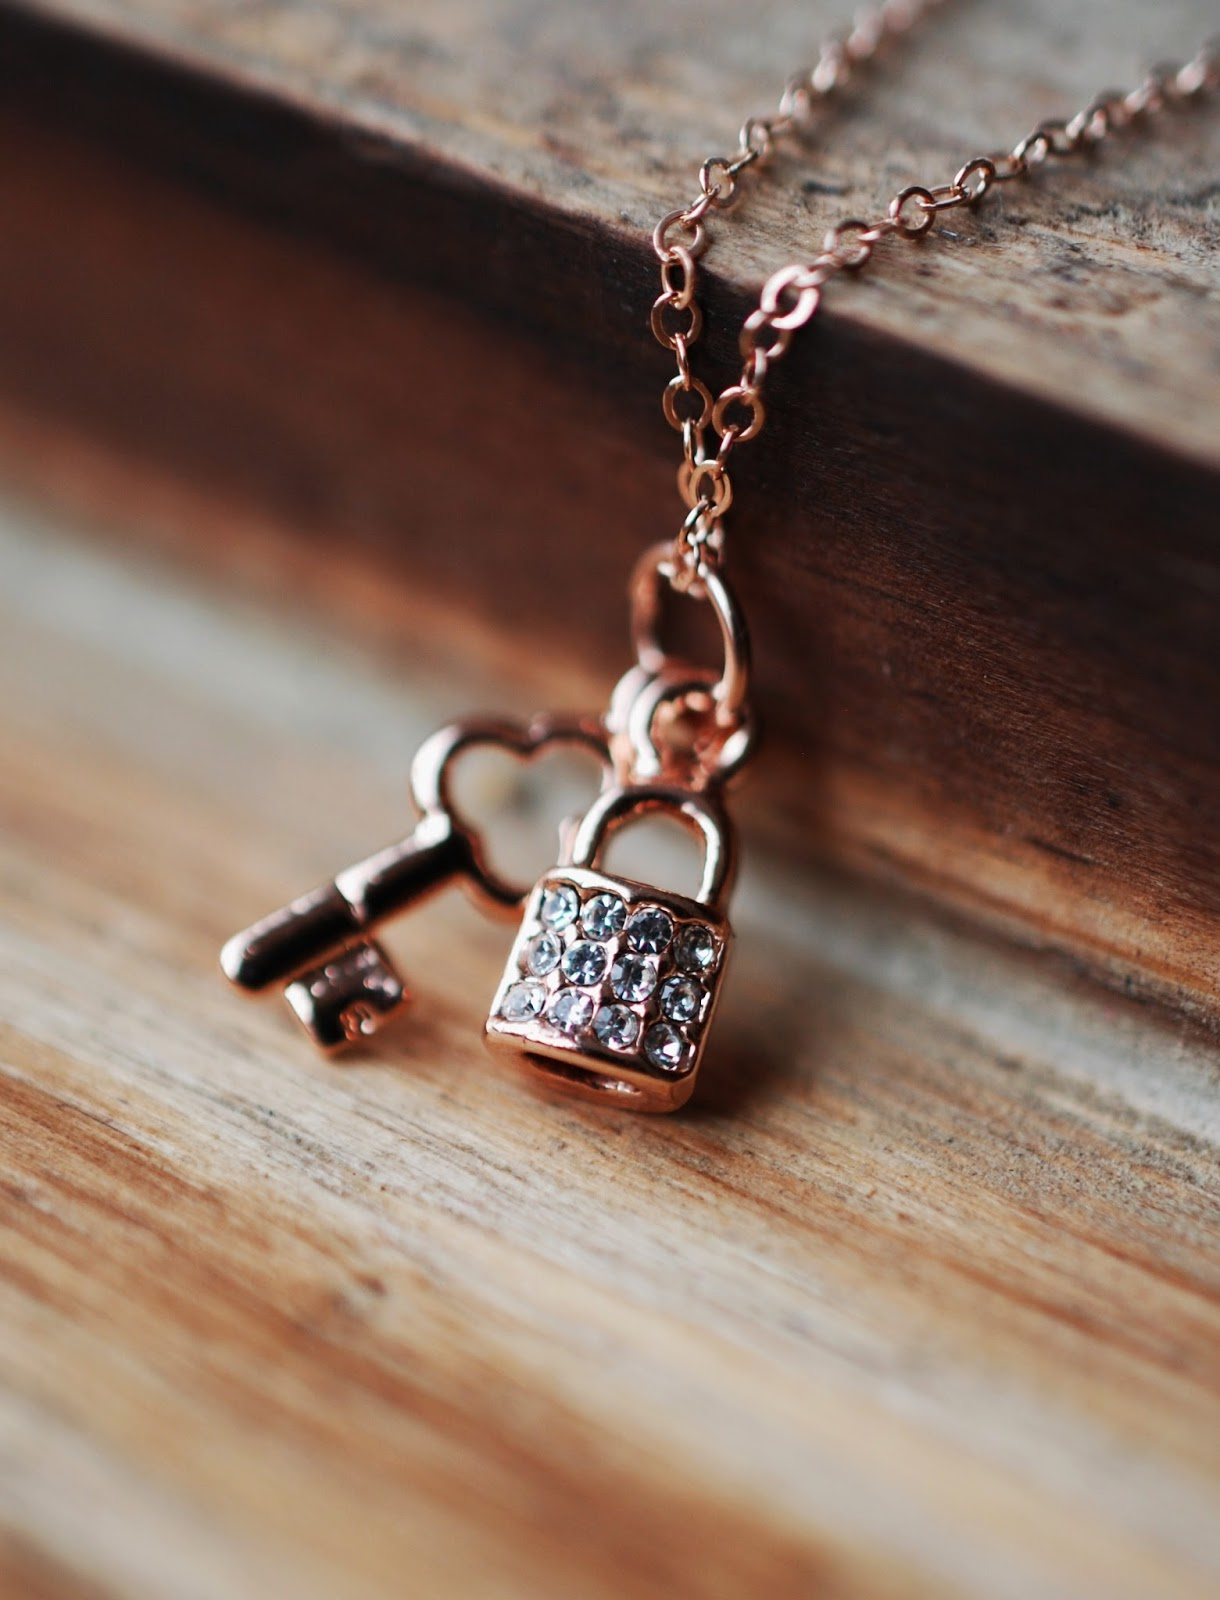 Anita Handmade New Arrival 198 Rose Gold Key Amp Lock